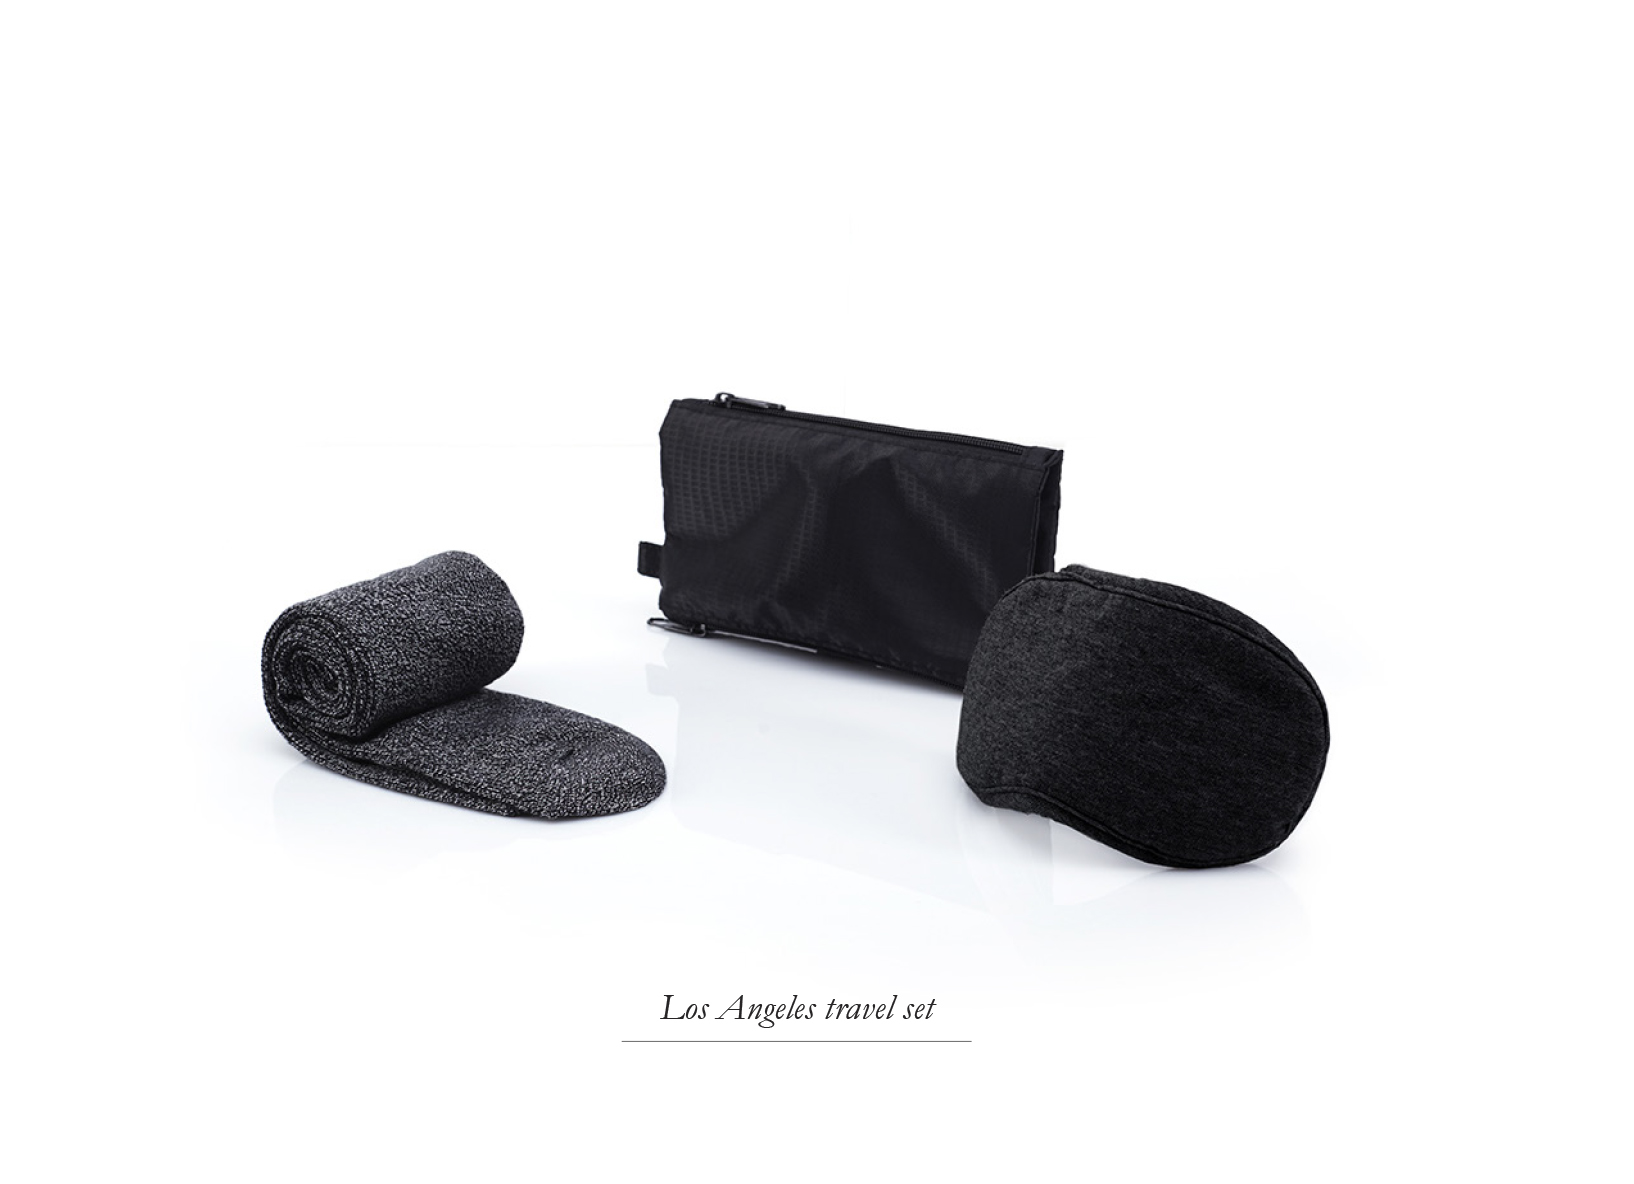 Amenity bags catalogue 2016_SHcollection_V6 112.jpg